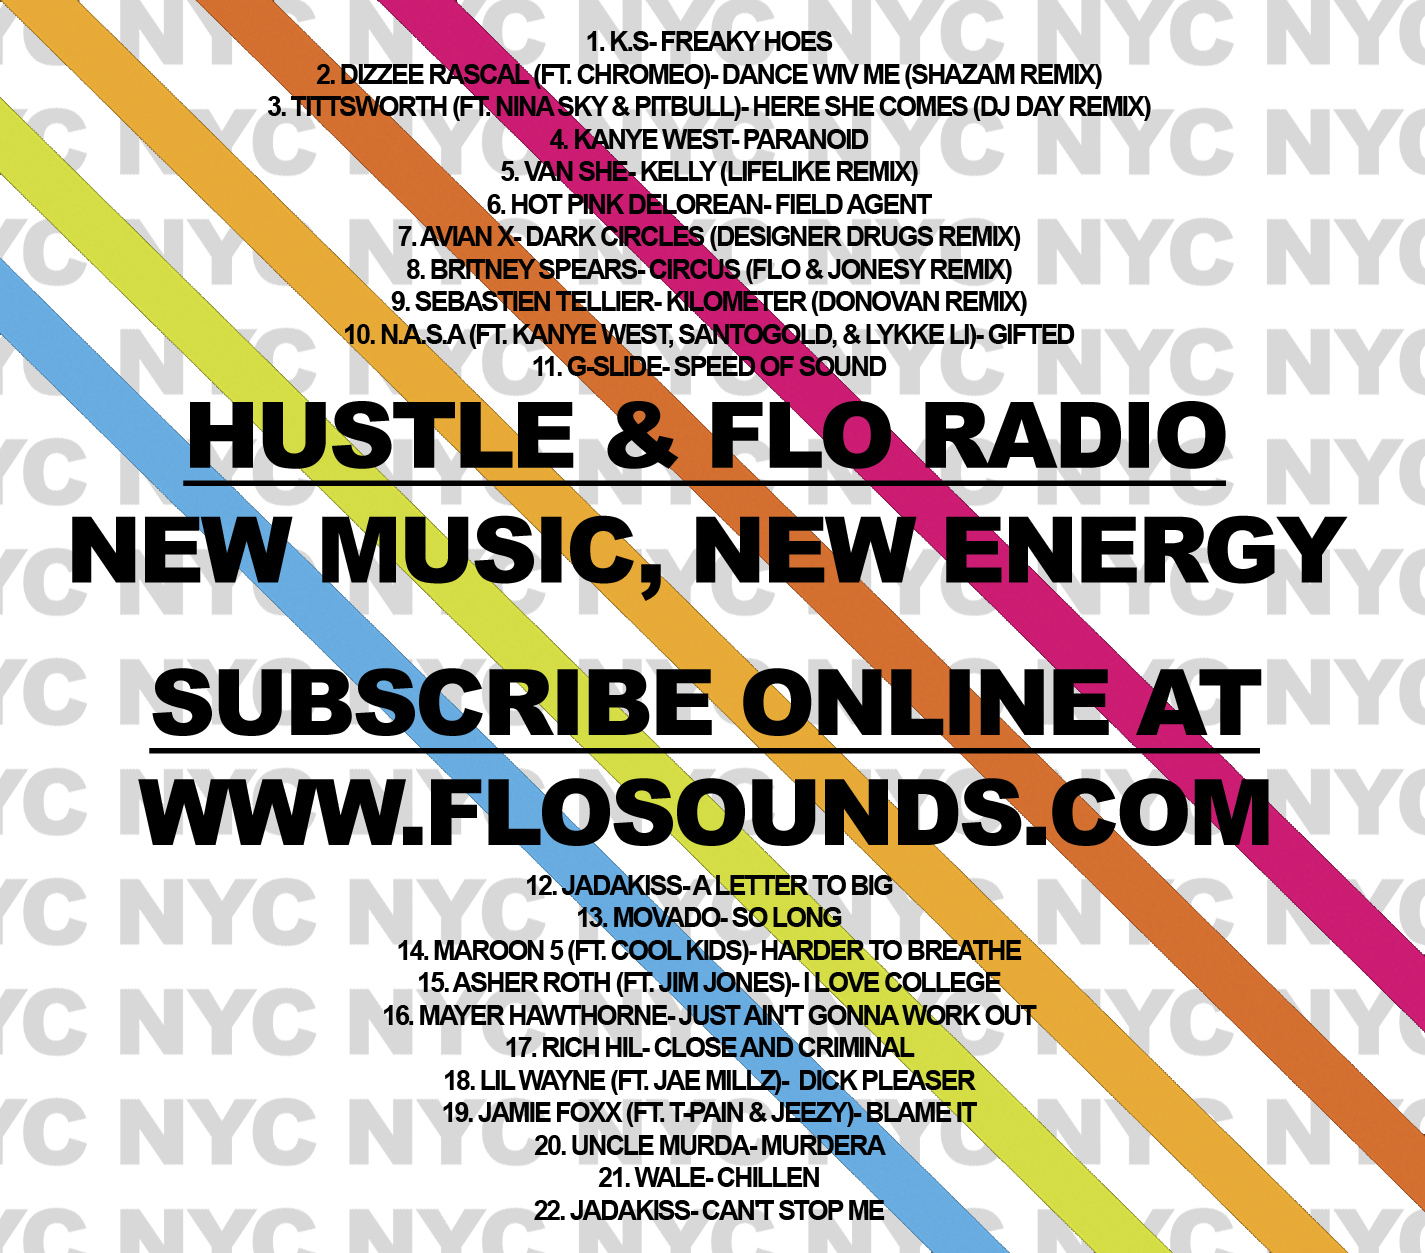 Hustle & FLO Podcast Radio- 2009 Premier (01.13.2009)